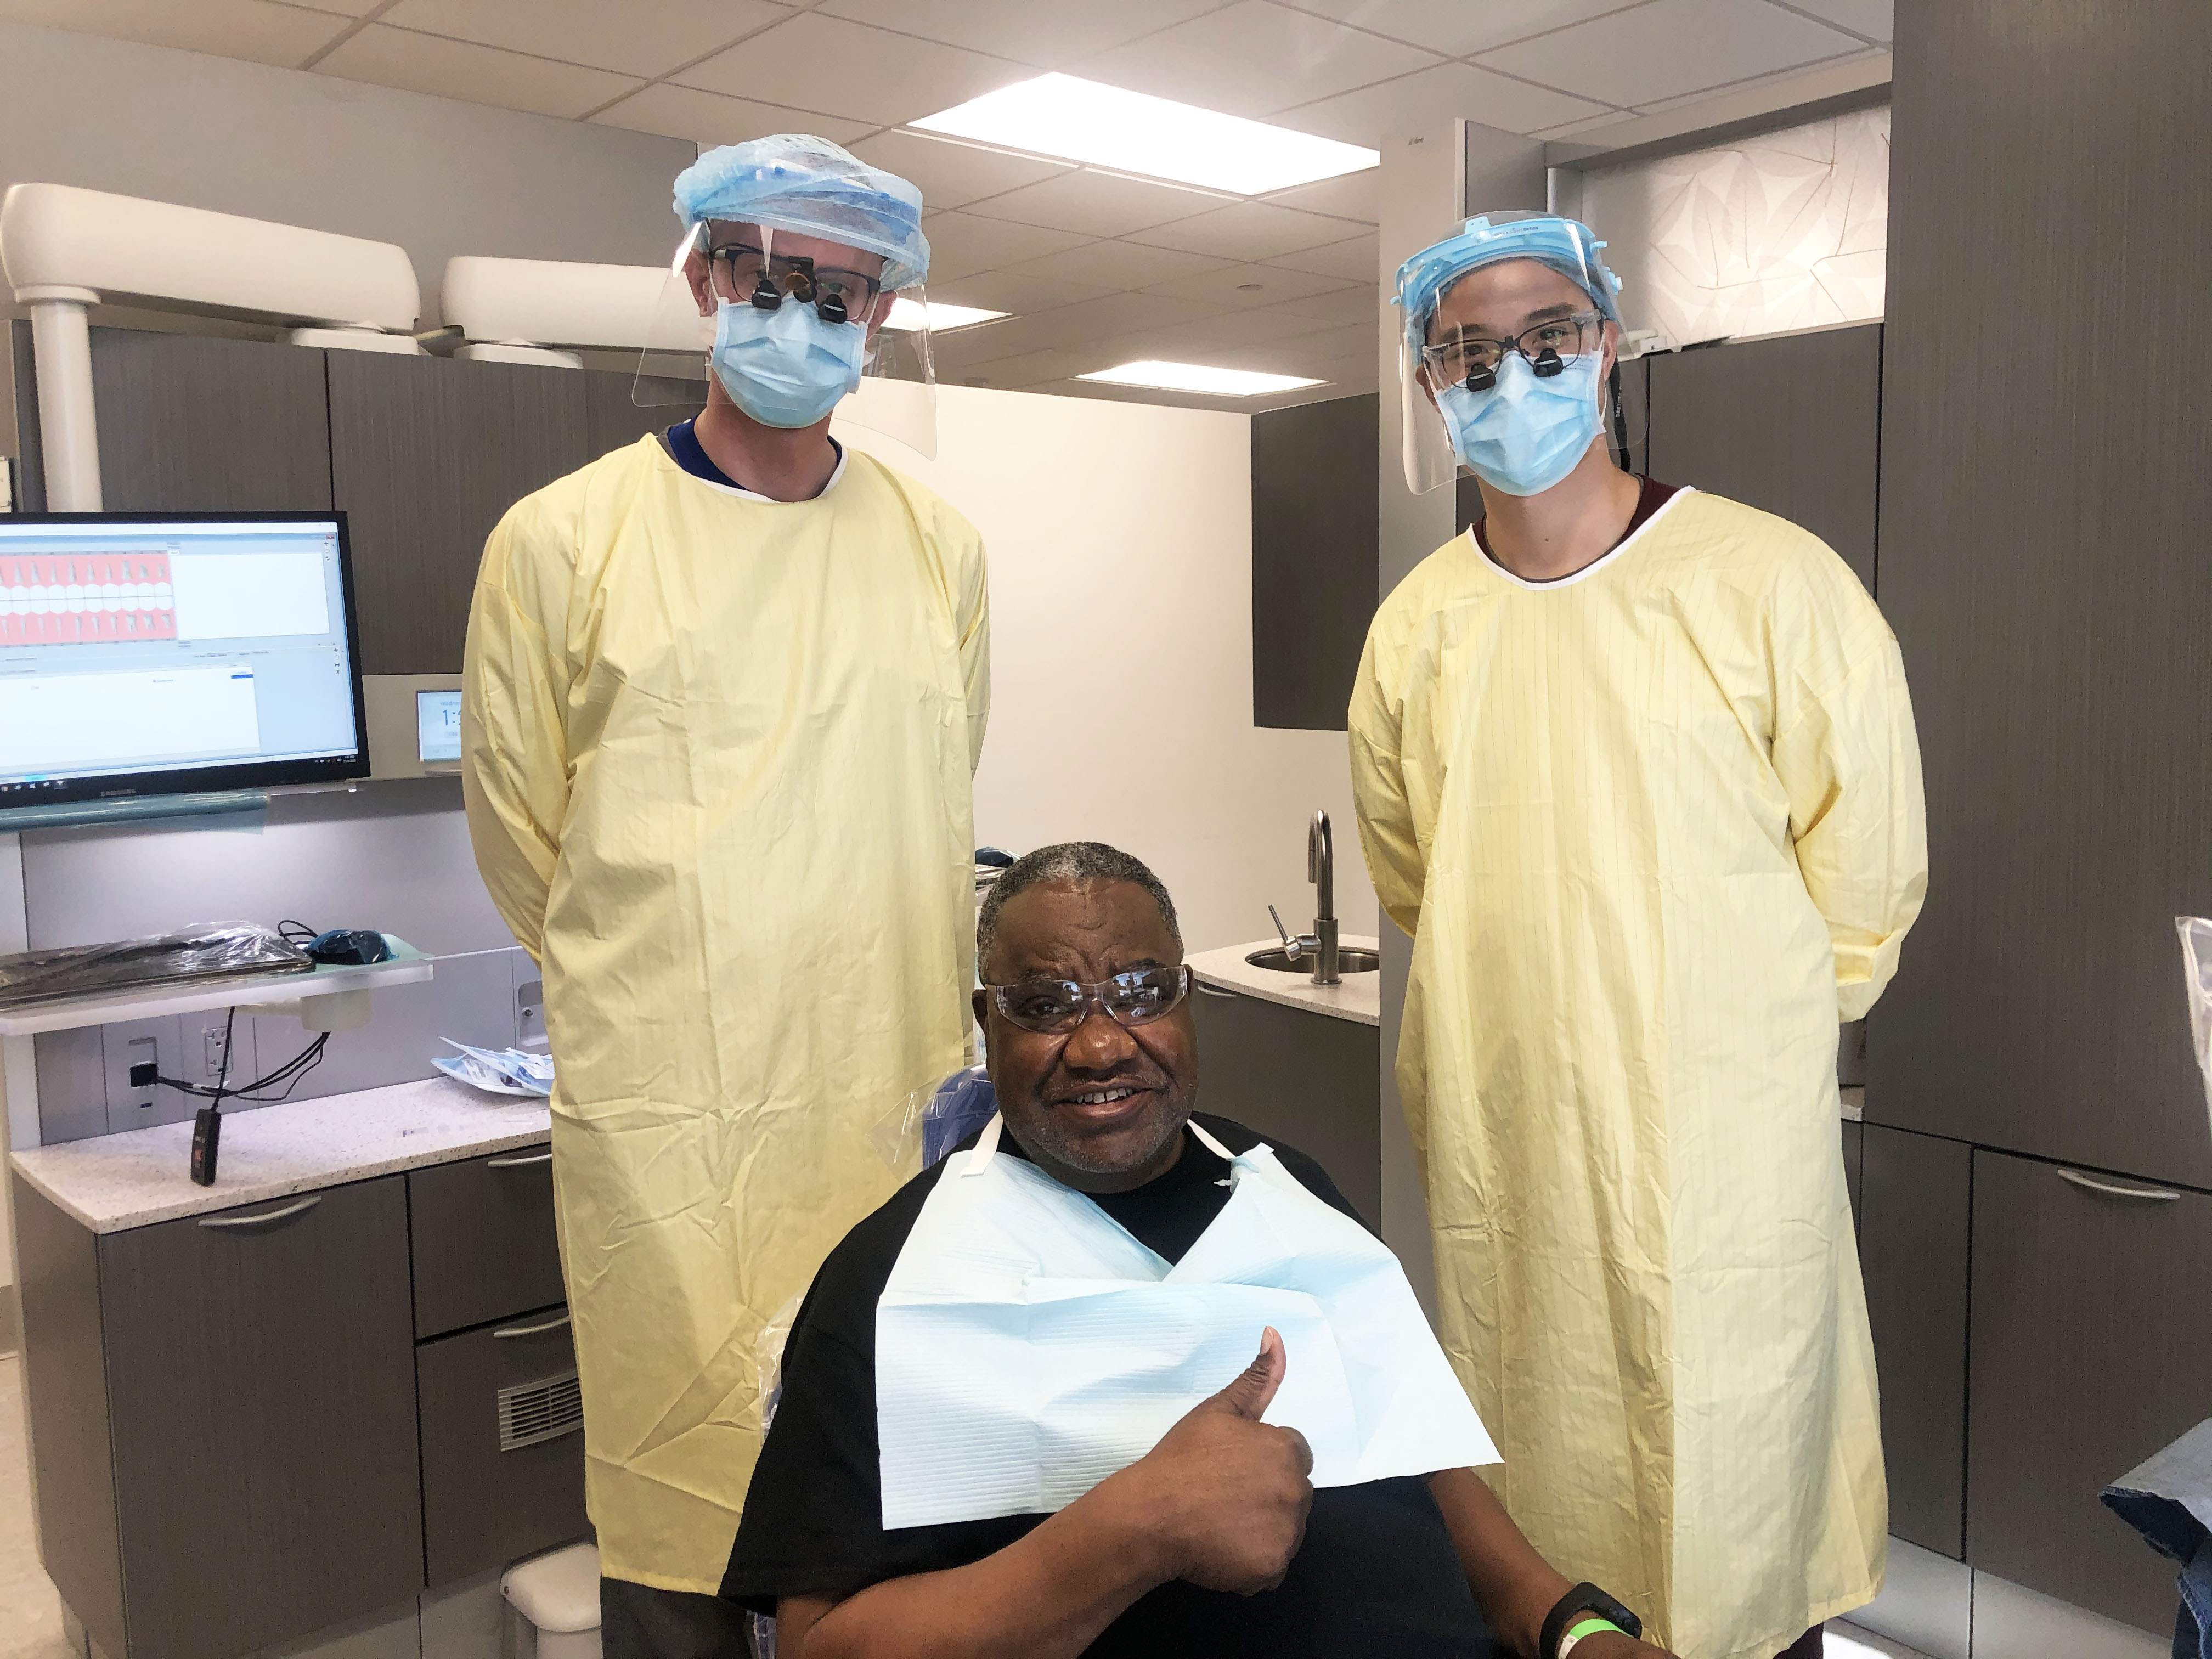 Former military personnel Robert Brown received dental care at TCDM as part of its annual Smiles for Veterans Program